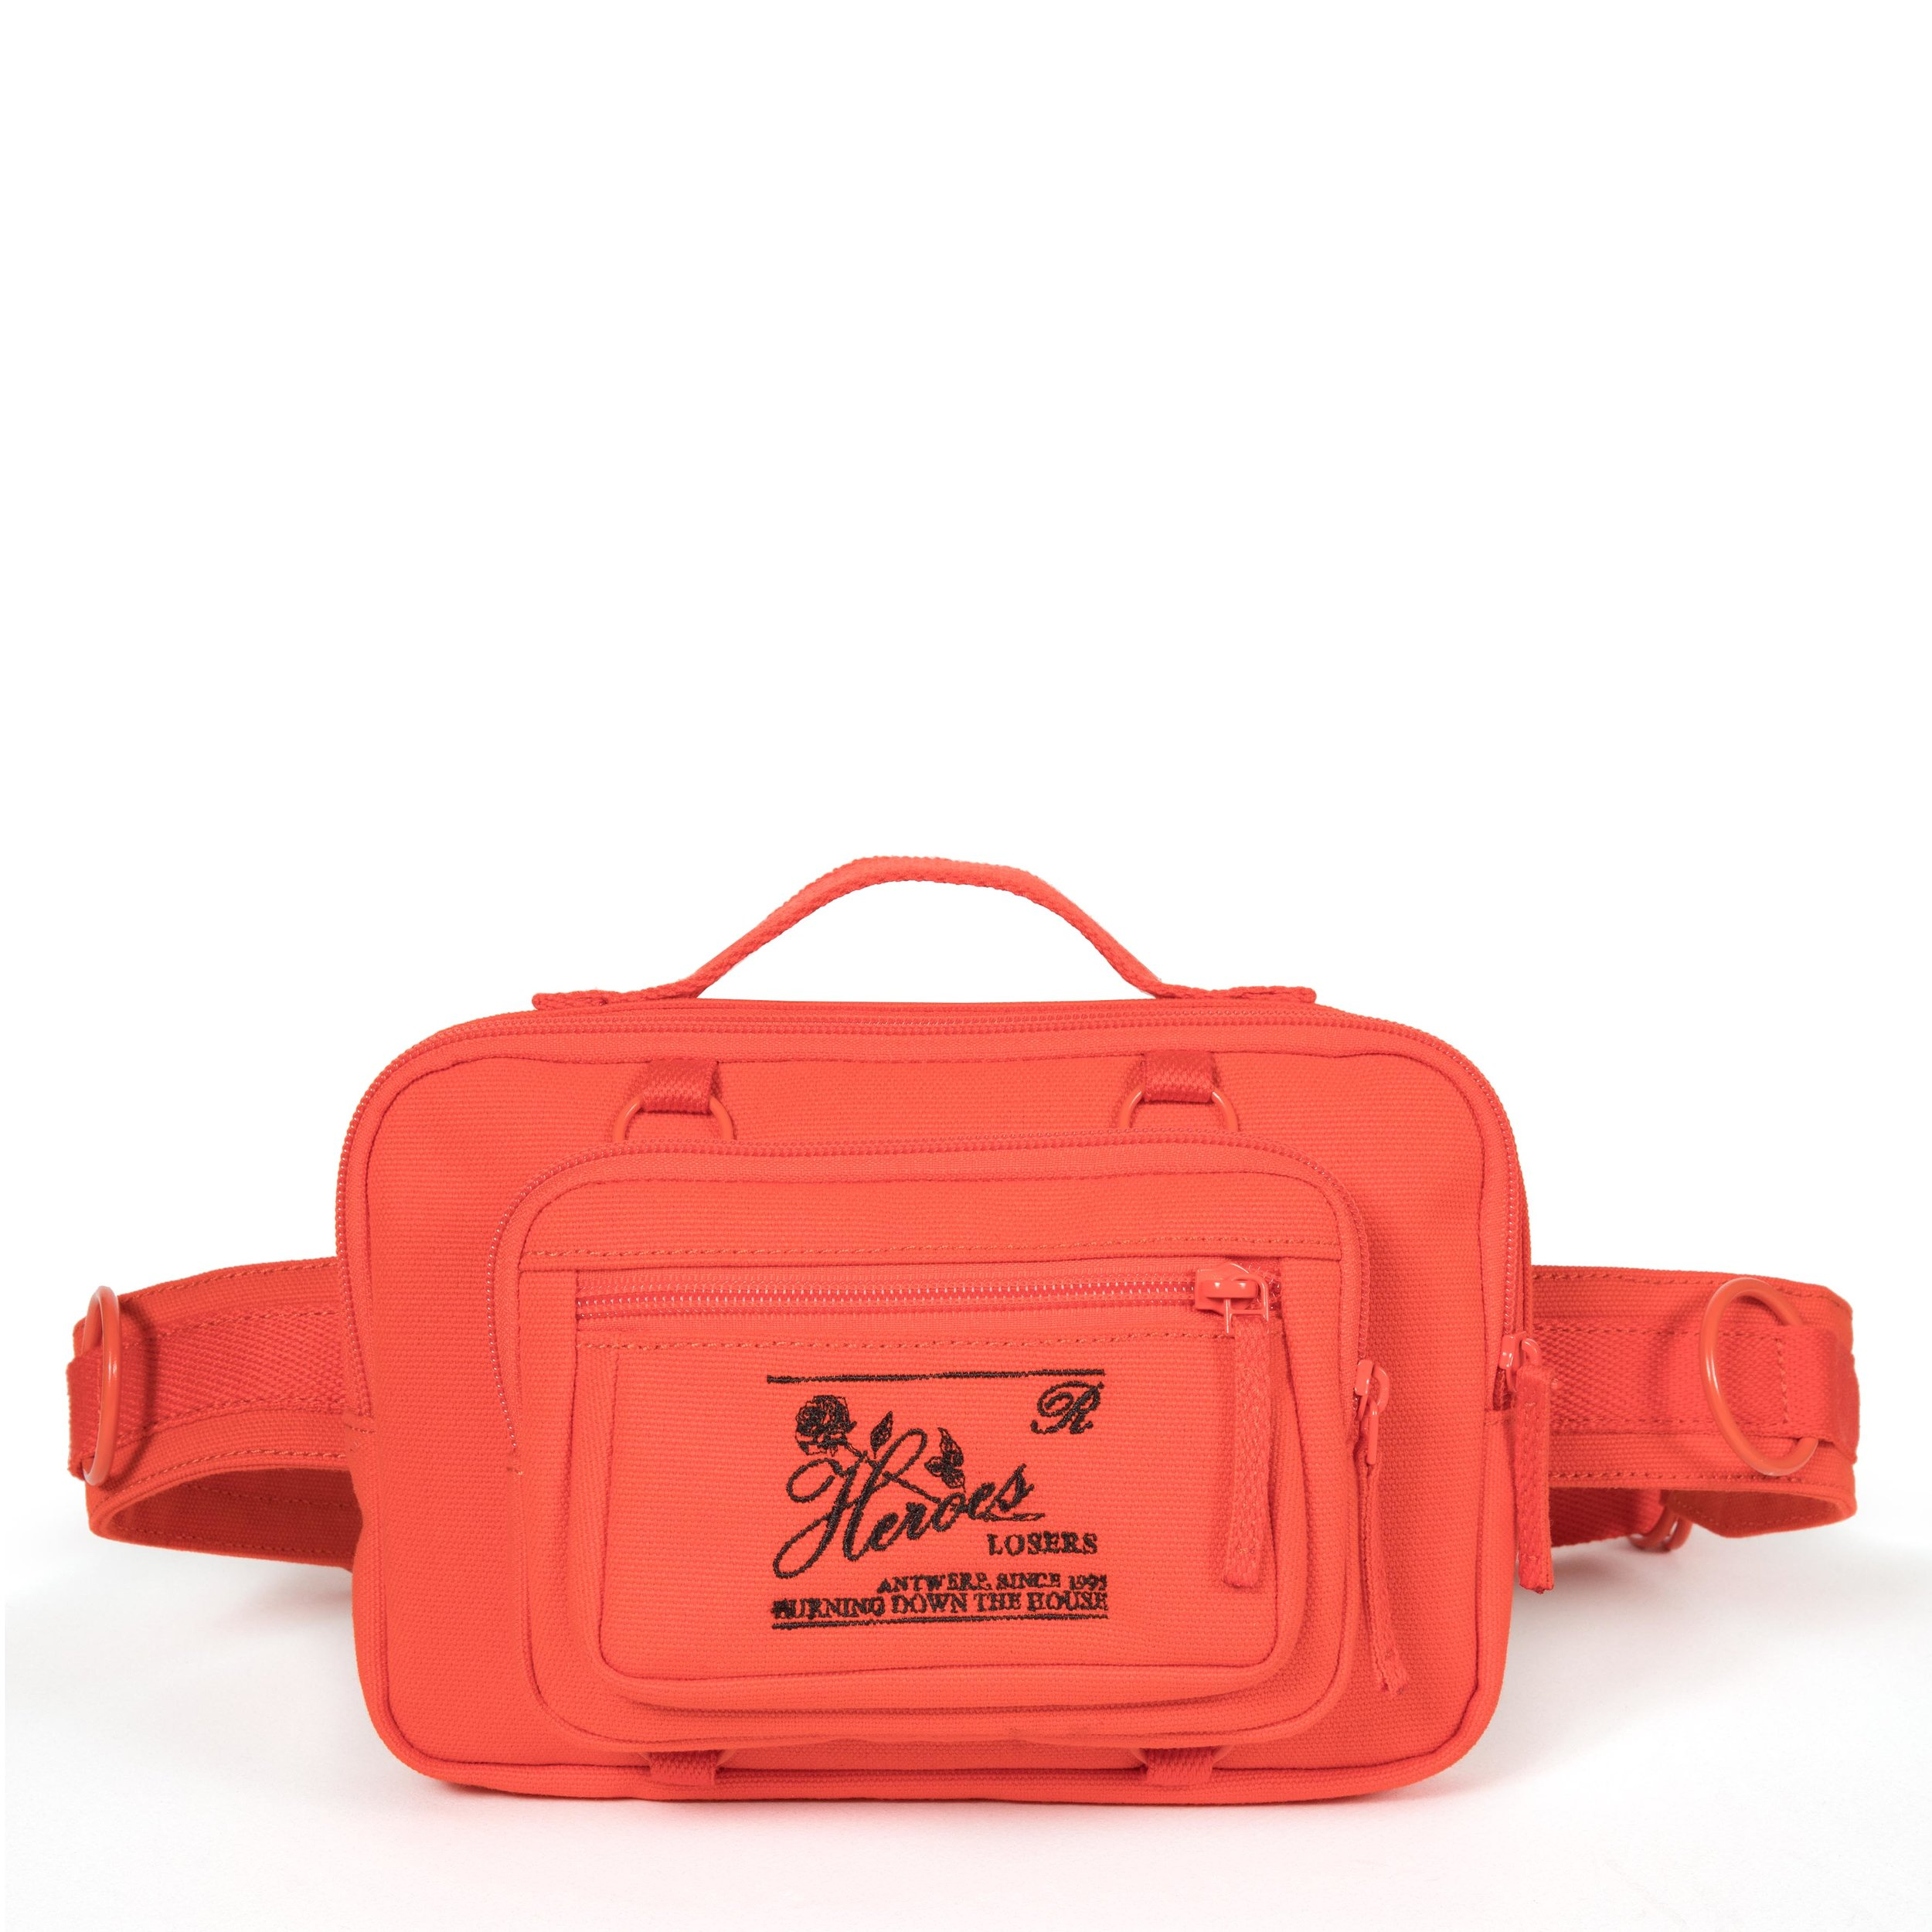 Eastpak X Raf Simons - Waistbag Loop - Orange - £100 - www.eastpak.jpg